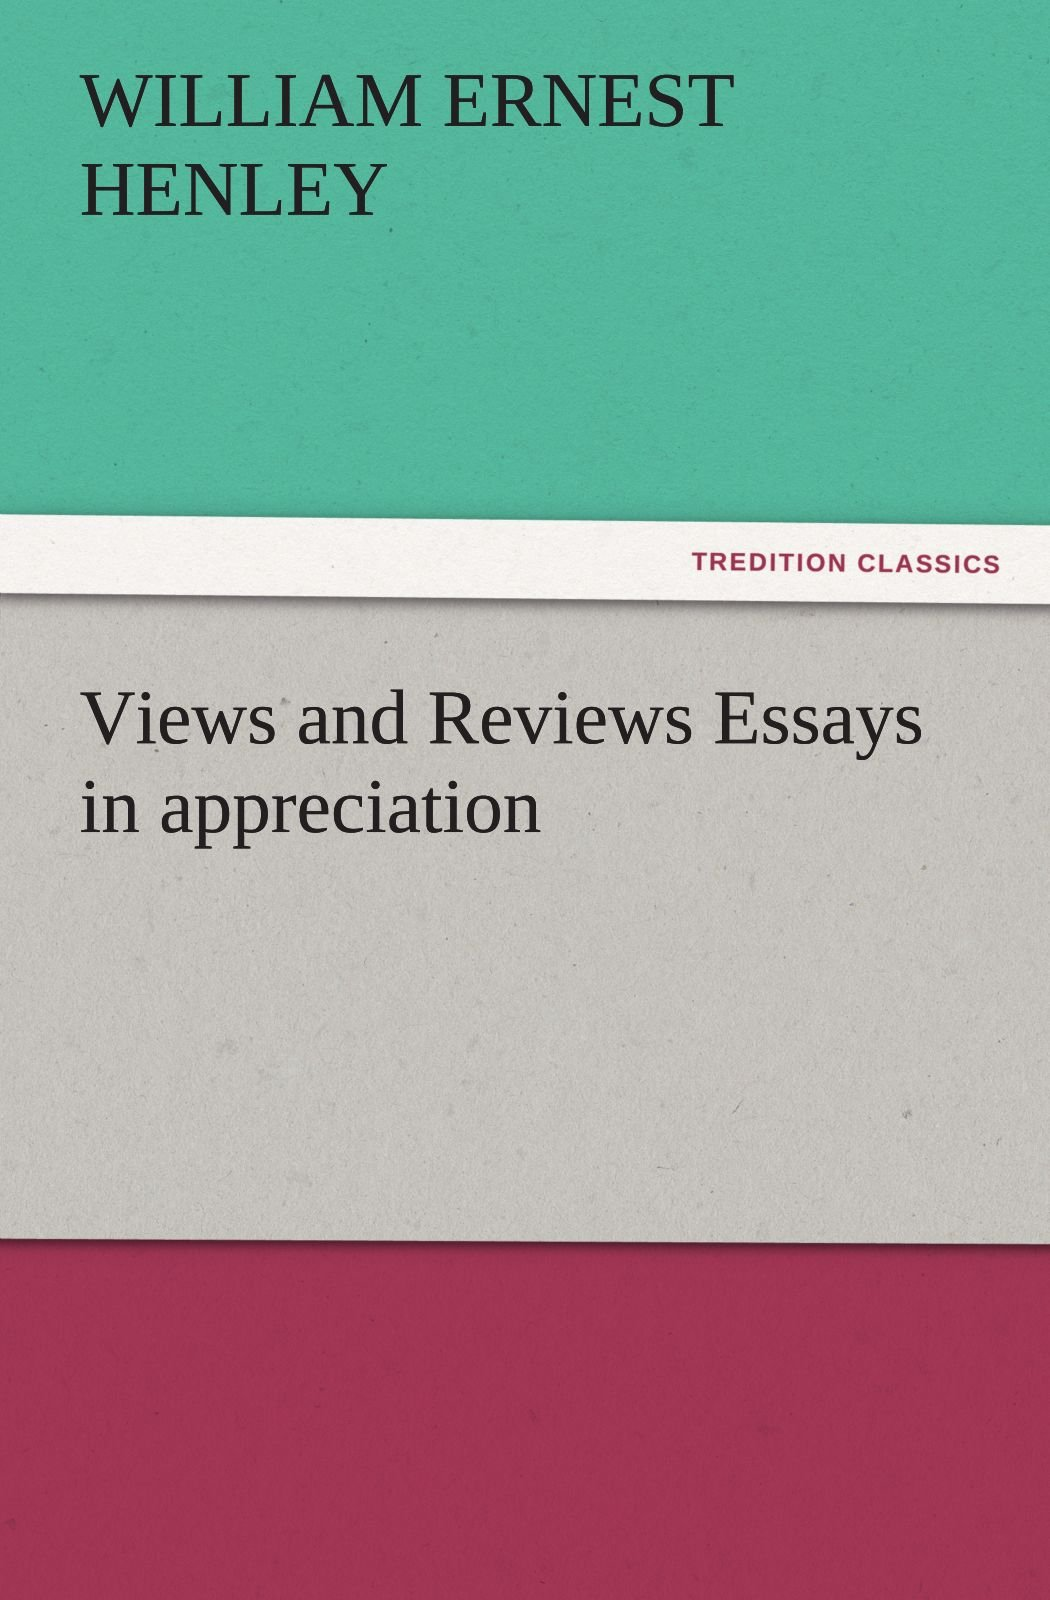 Views and Reviews Essays in appreciation (TREDITION CLASSICS) pdf